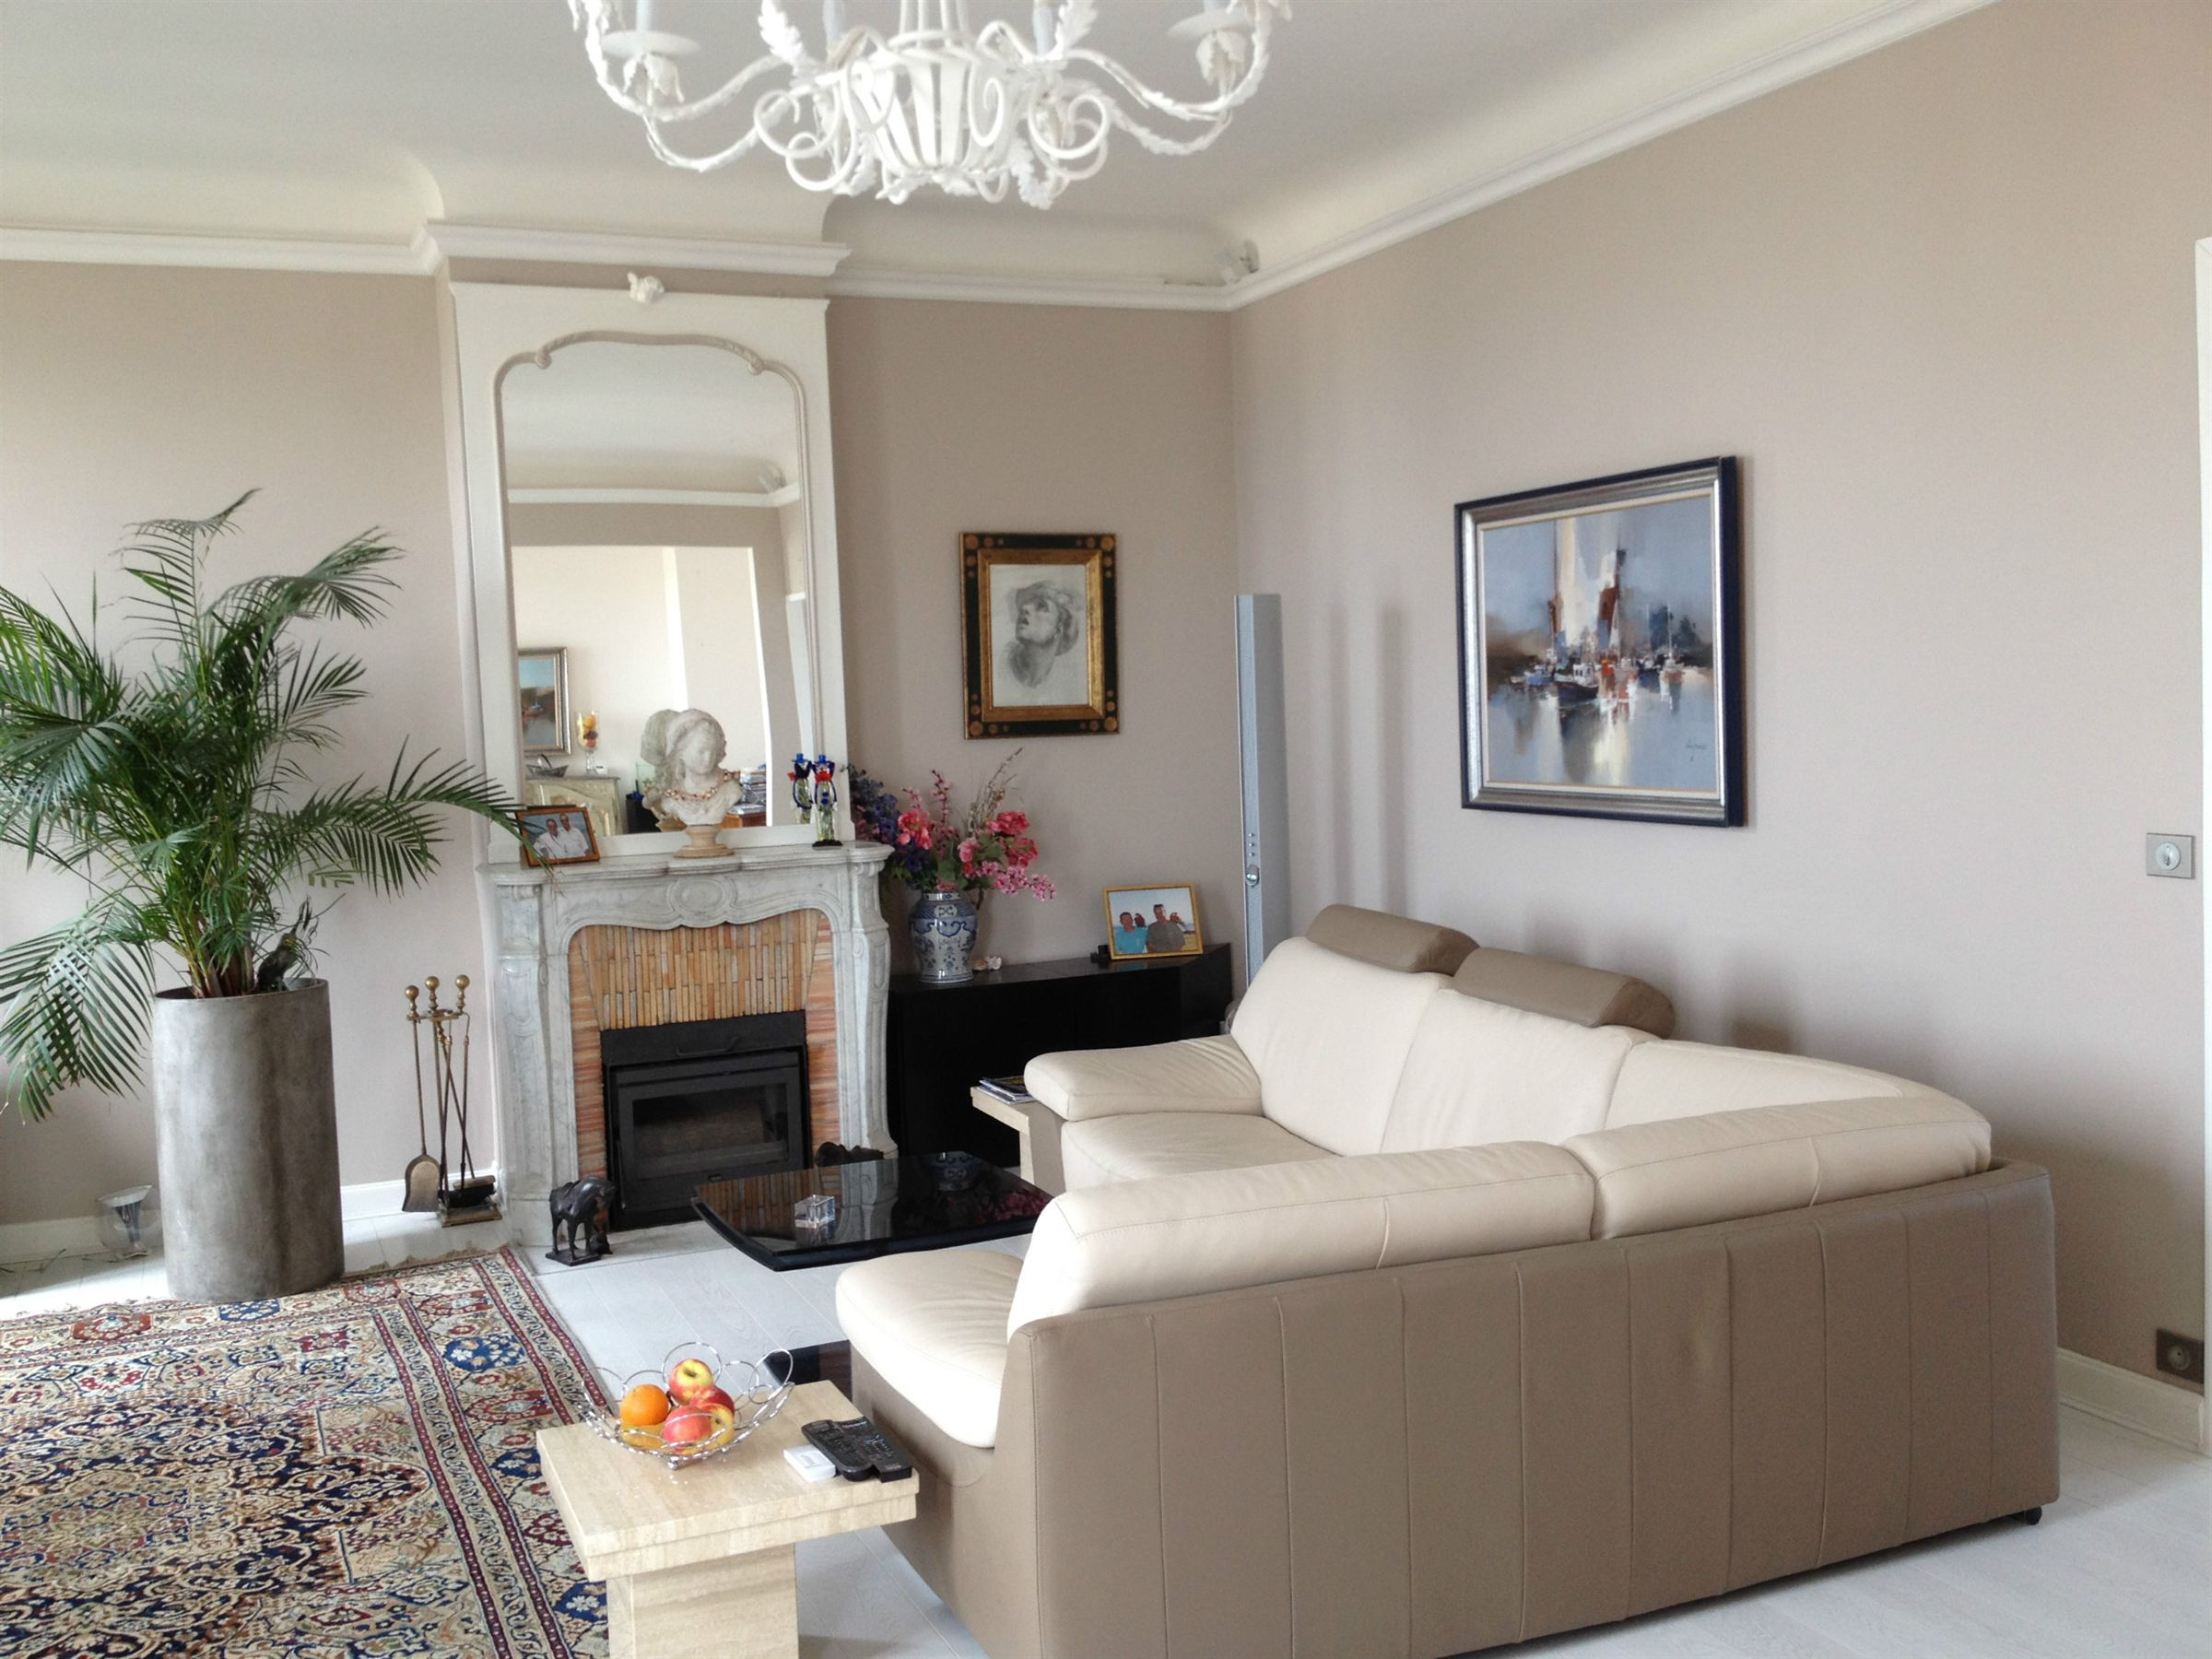 Property For Sale at ARCACHON - FRONT LINE APARTMENT WITH A VIEW